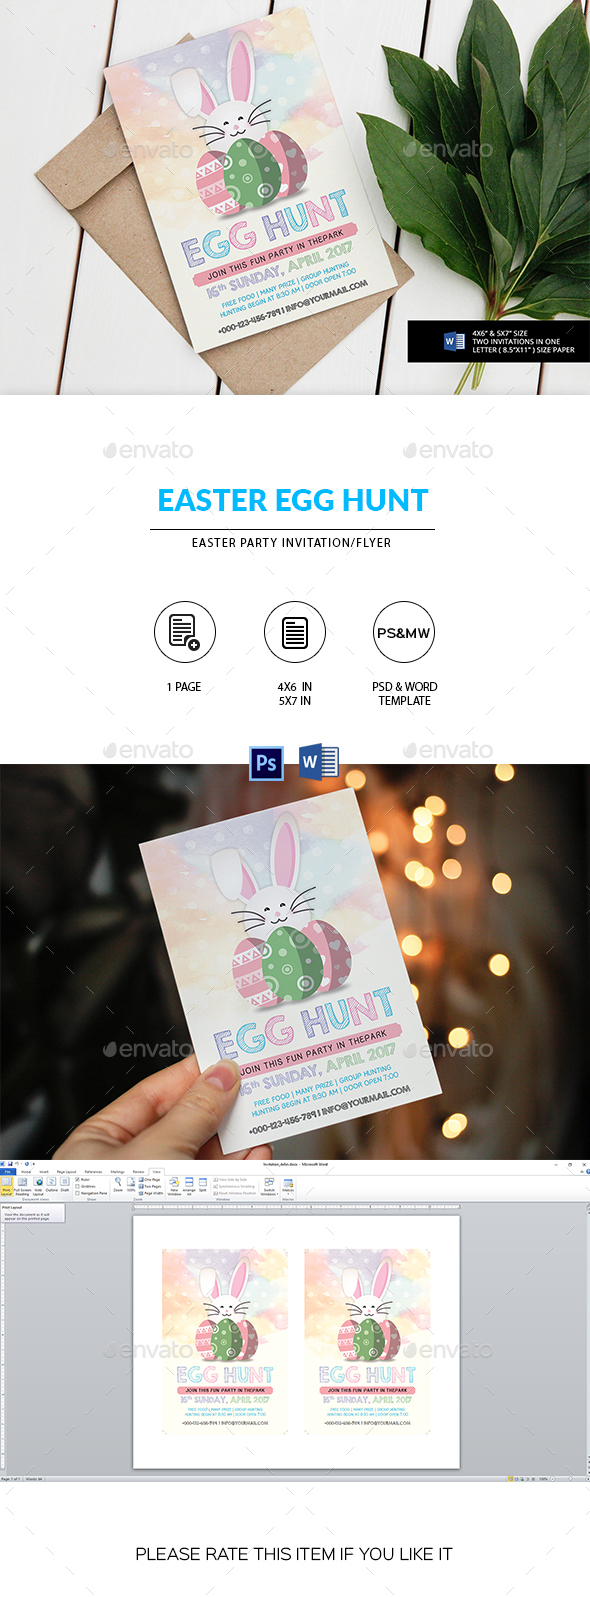 Easter Egg Hunt Party Invitation/Flyer - Holidays Events